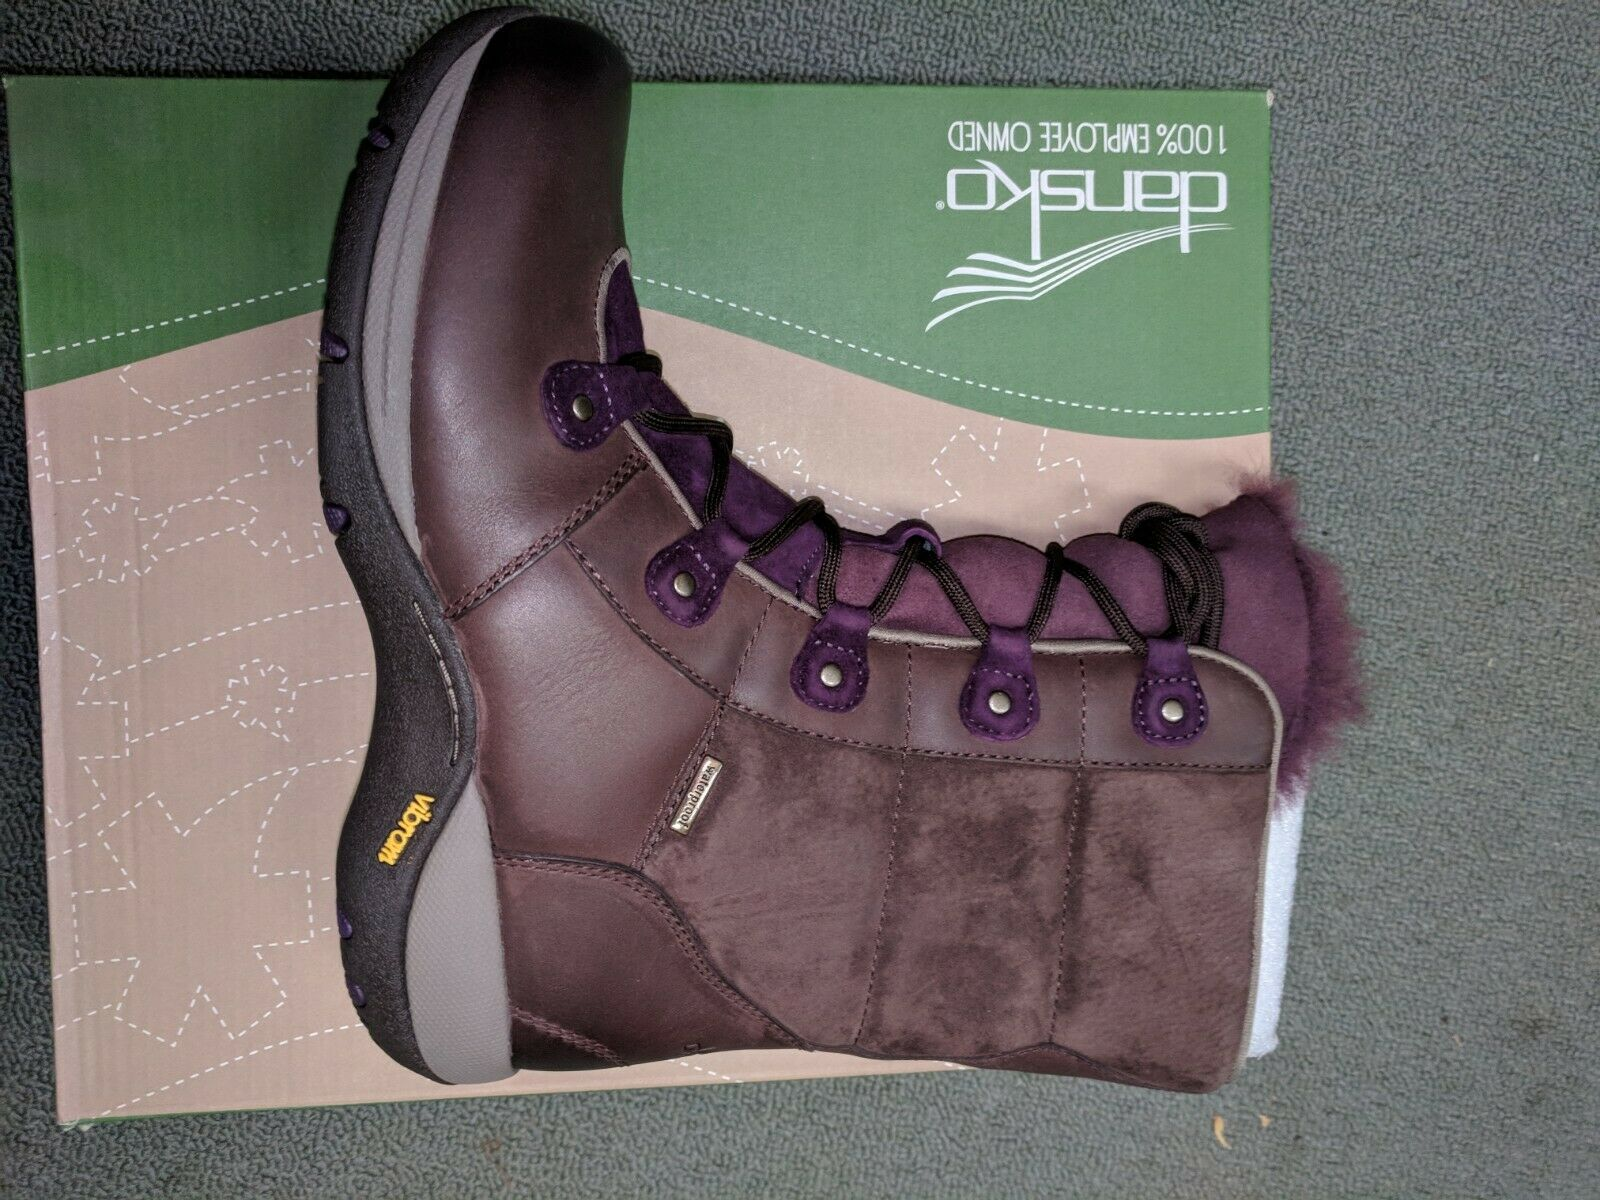 Dansko Camryn Earthy G   Purple Fur Lace Up Boots Size 38 US 7.5-8 Rare New  all in high quality and low price